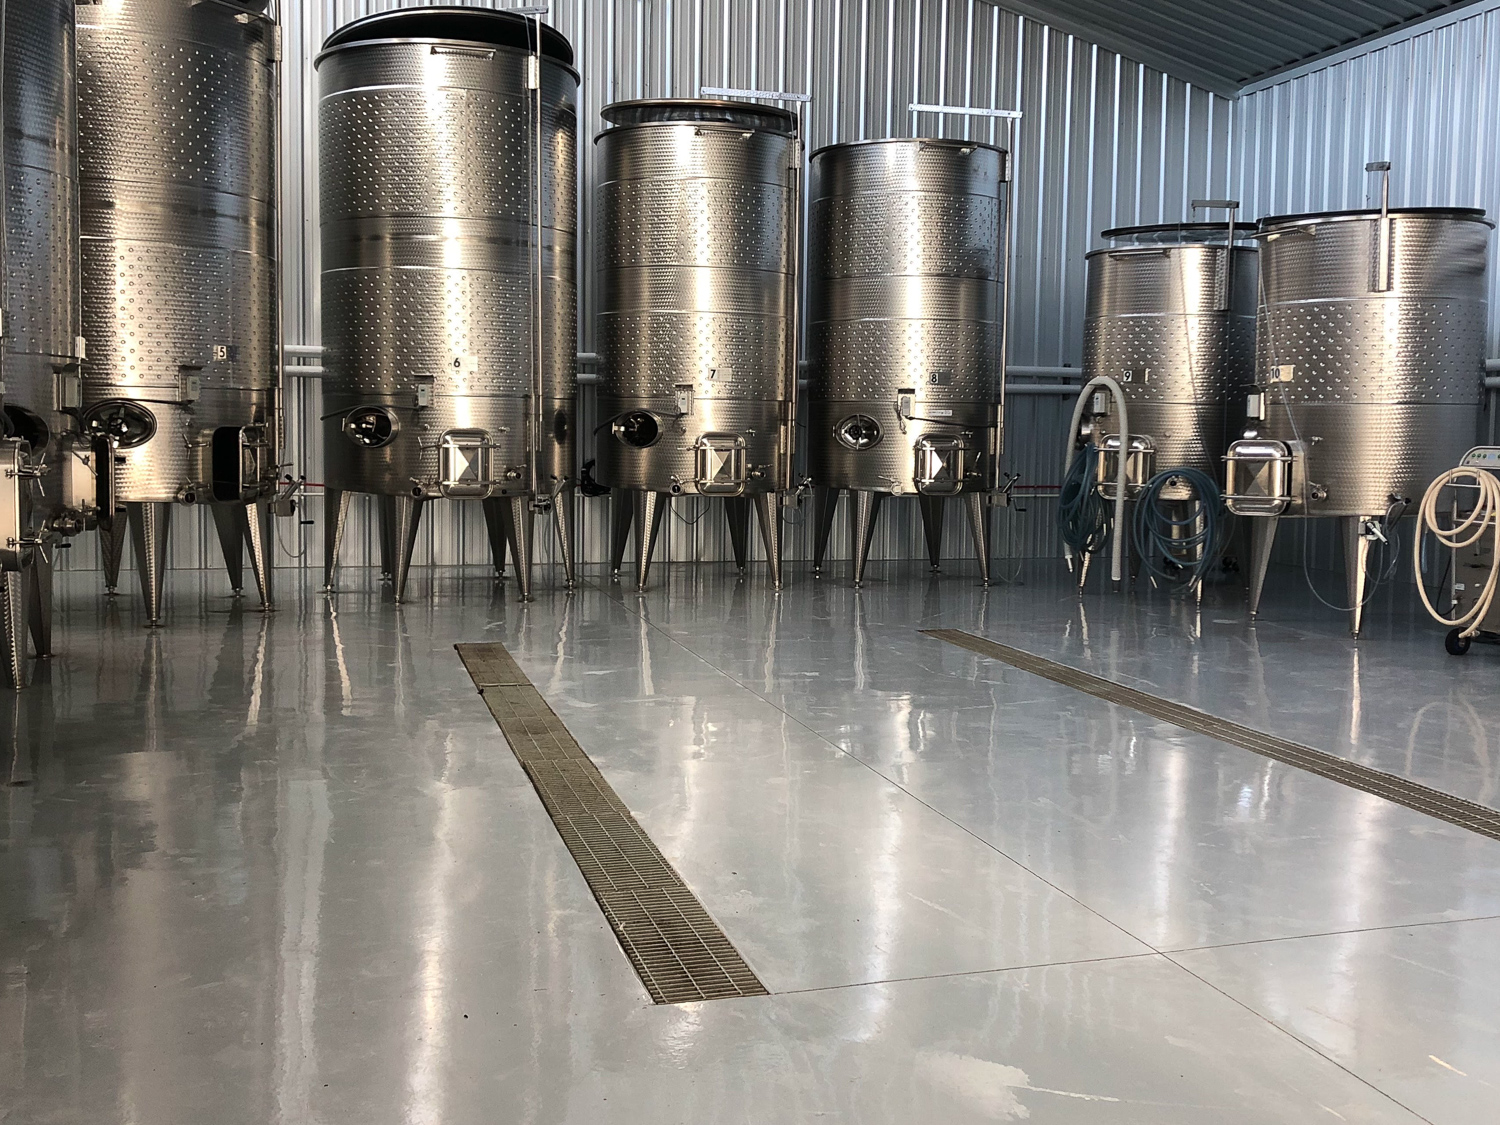 Solid Color Epoxy - Clean modern look - surprisingly hard to do, but we excel at this. This treatment is perfect for airplane hangars or garages where the client wants something visually quiet to find dropped fasteners on.